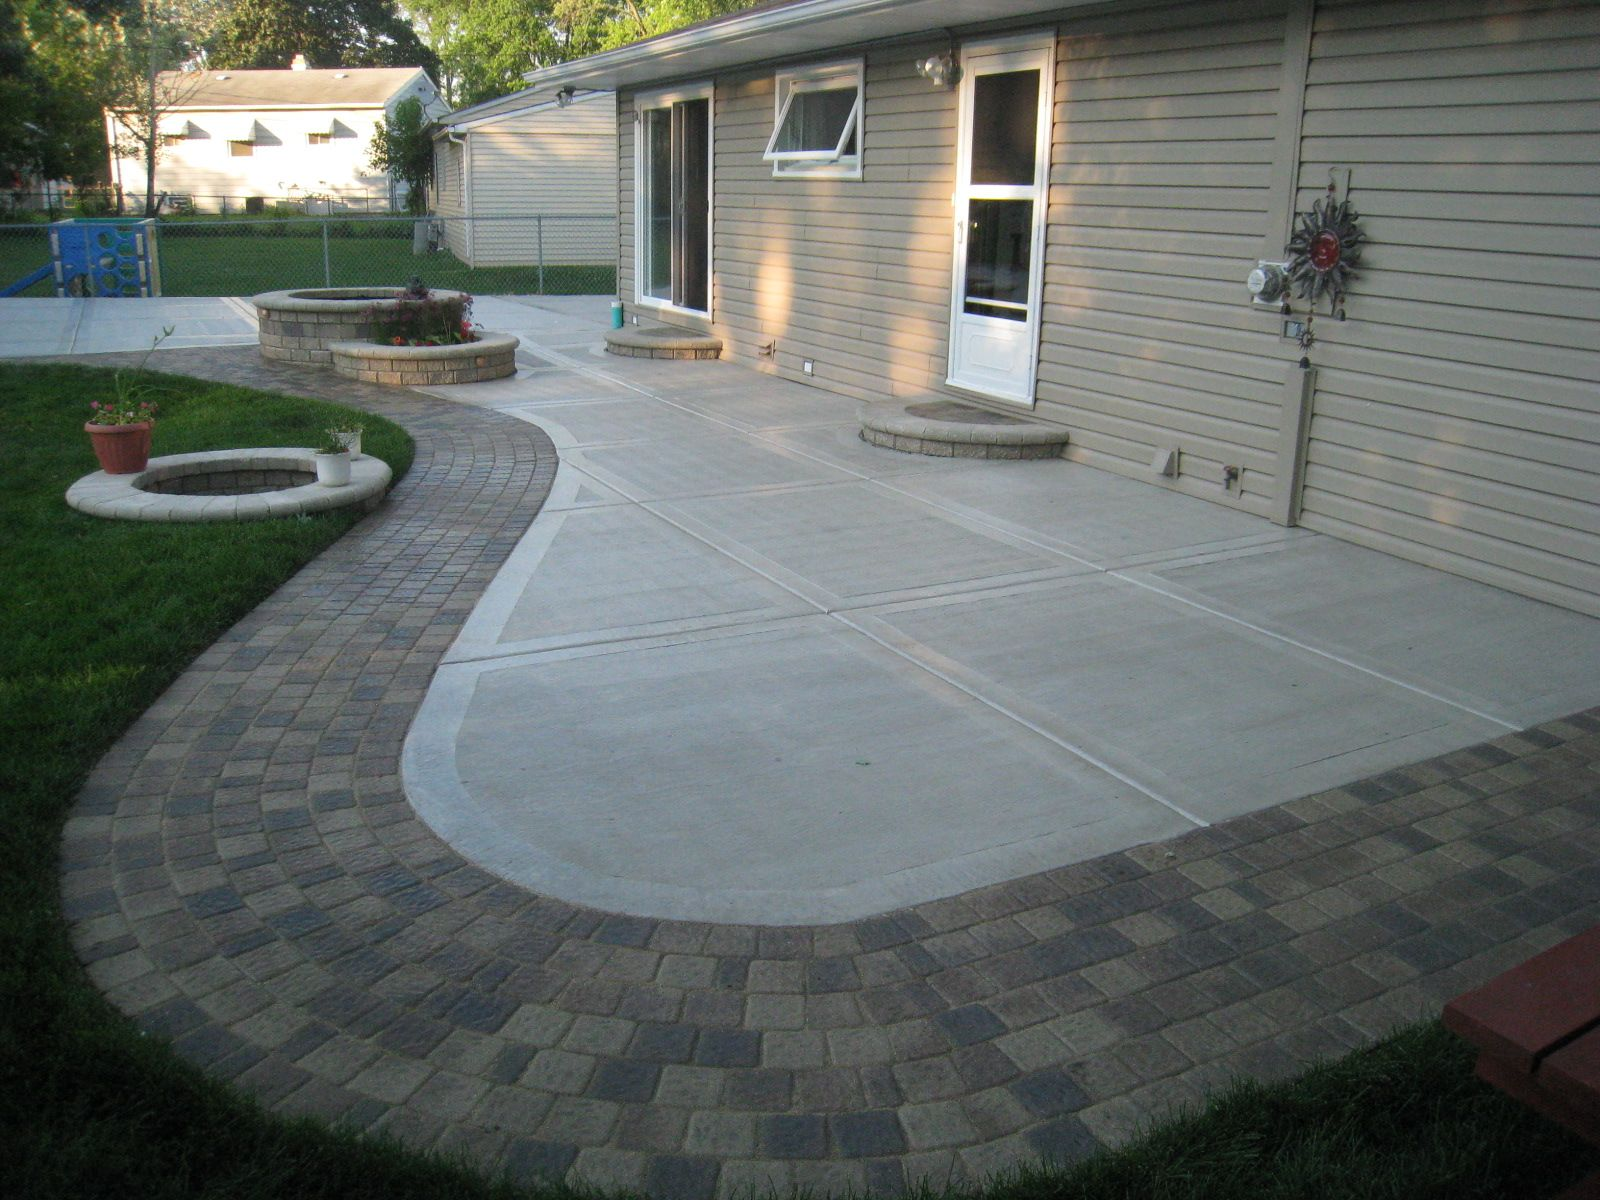 pin by tiffany howard on new patio in 2019 | concrete patio